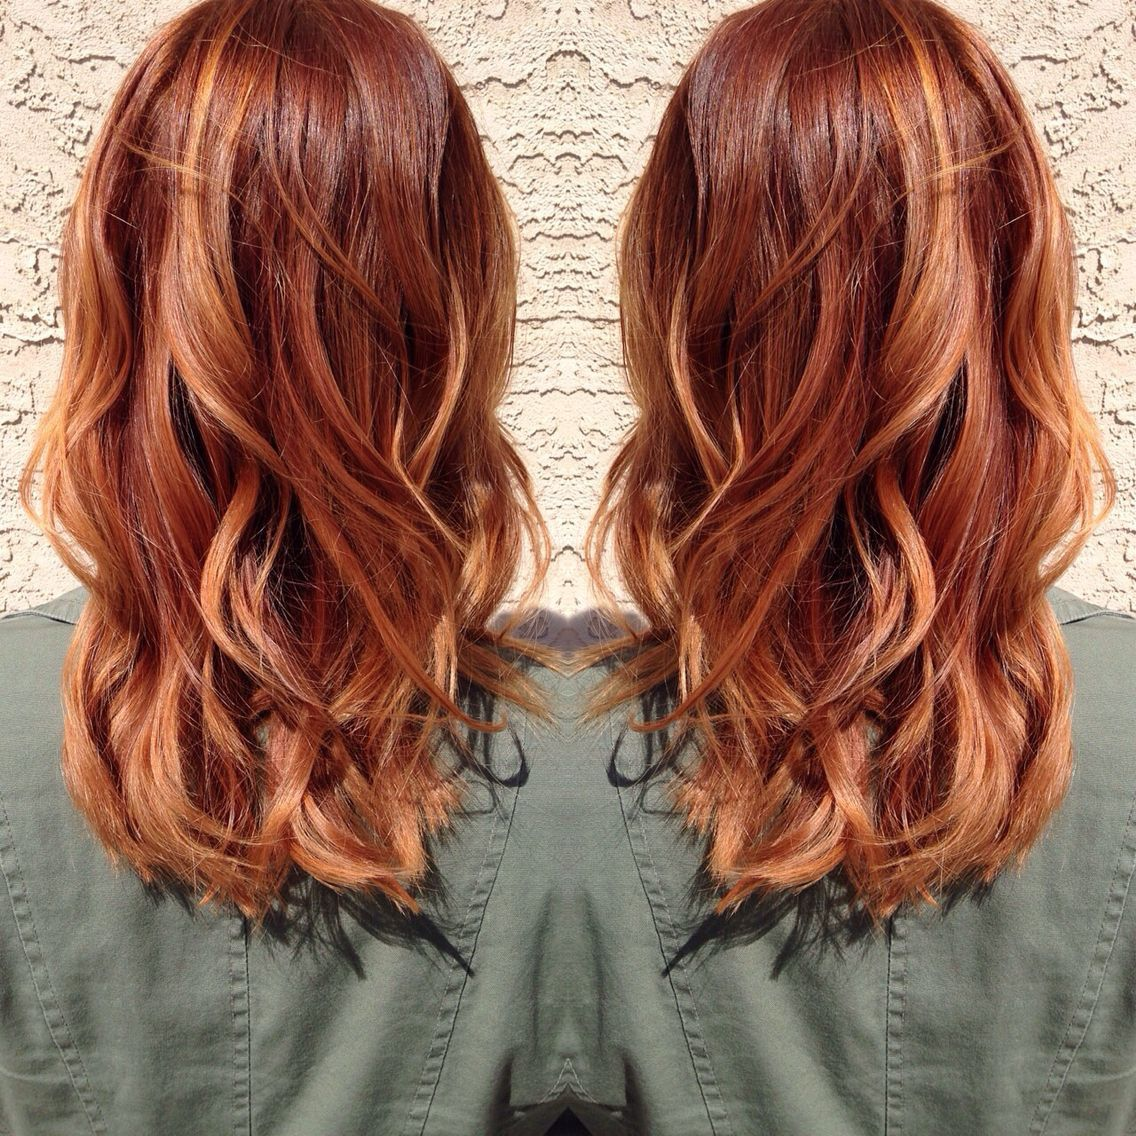 Pin By Zota Andreea On Hair Pinterest Hair Coloring Hair Style